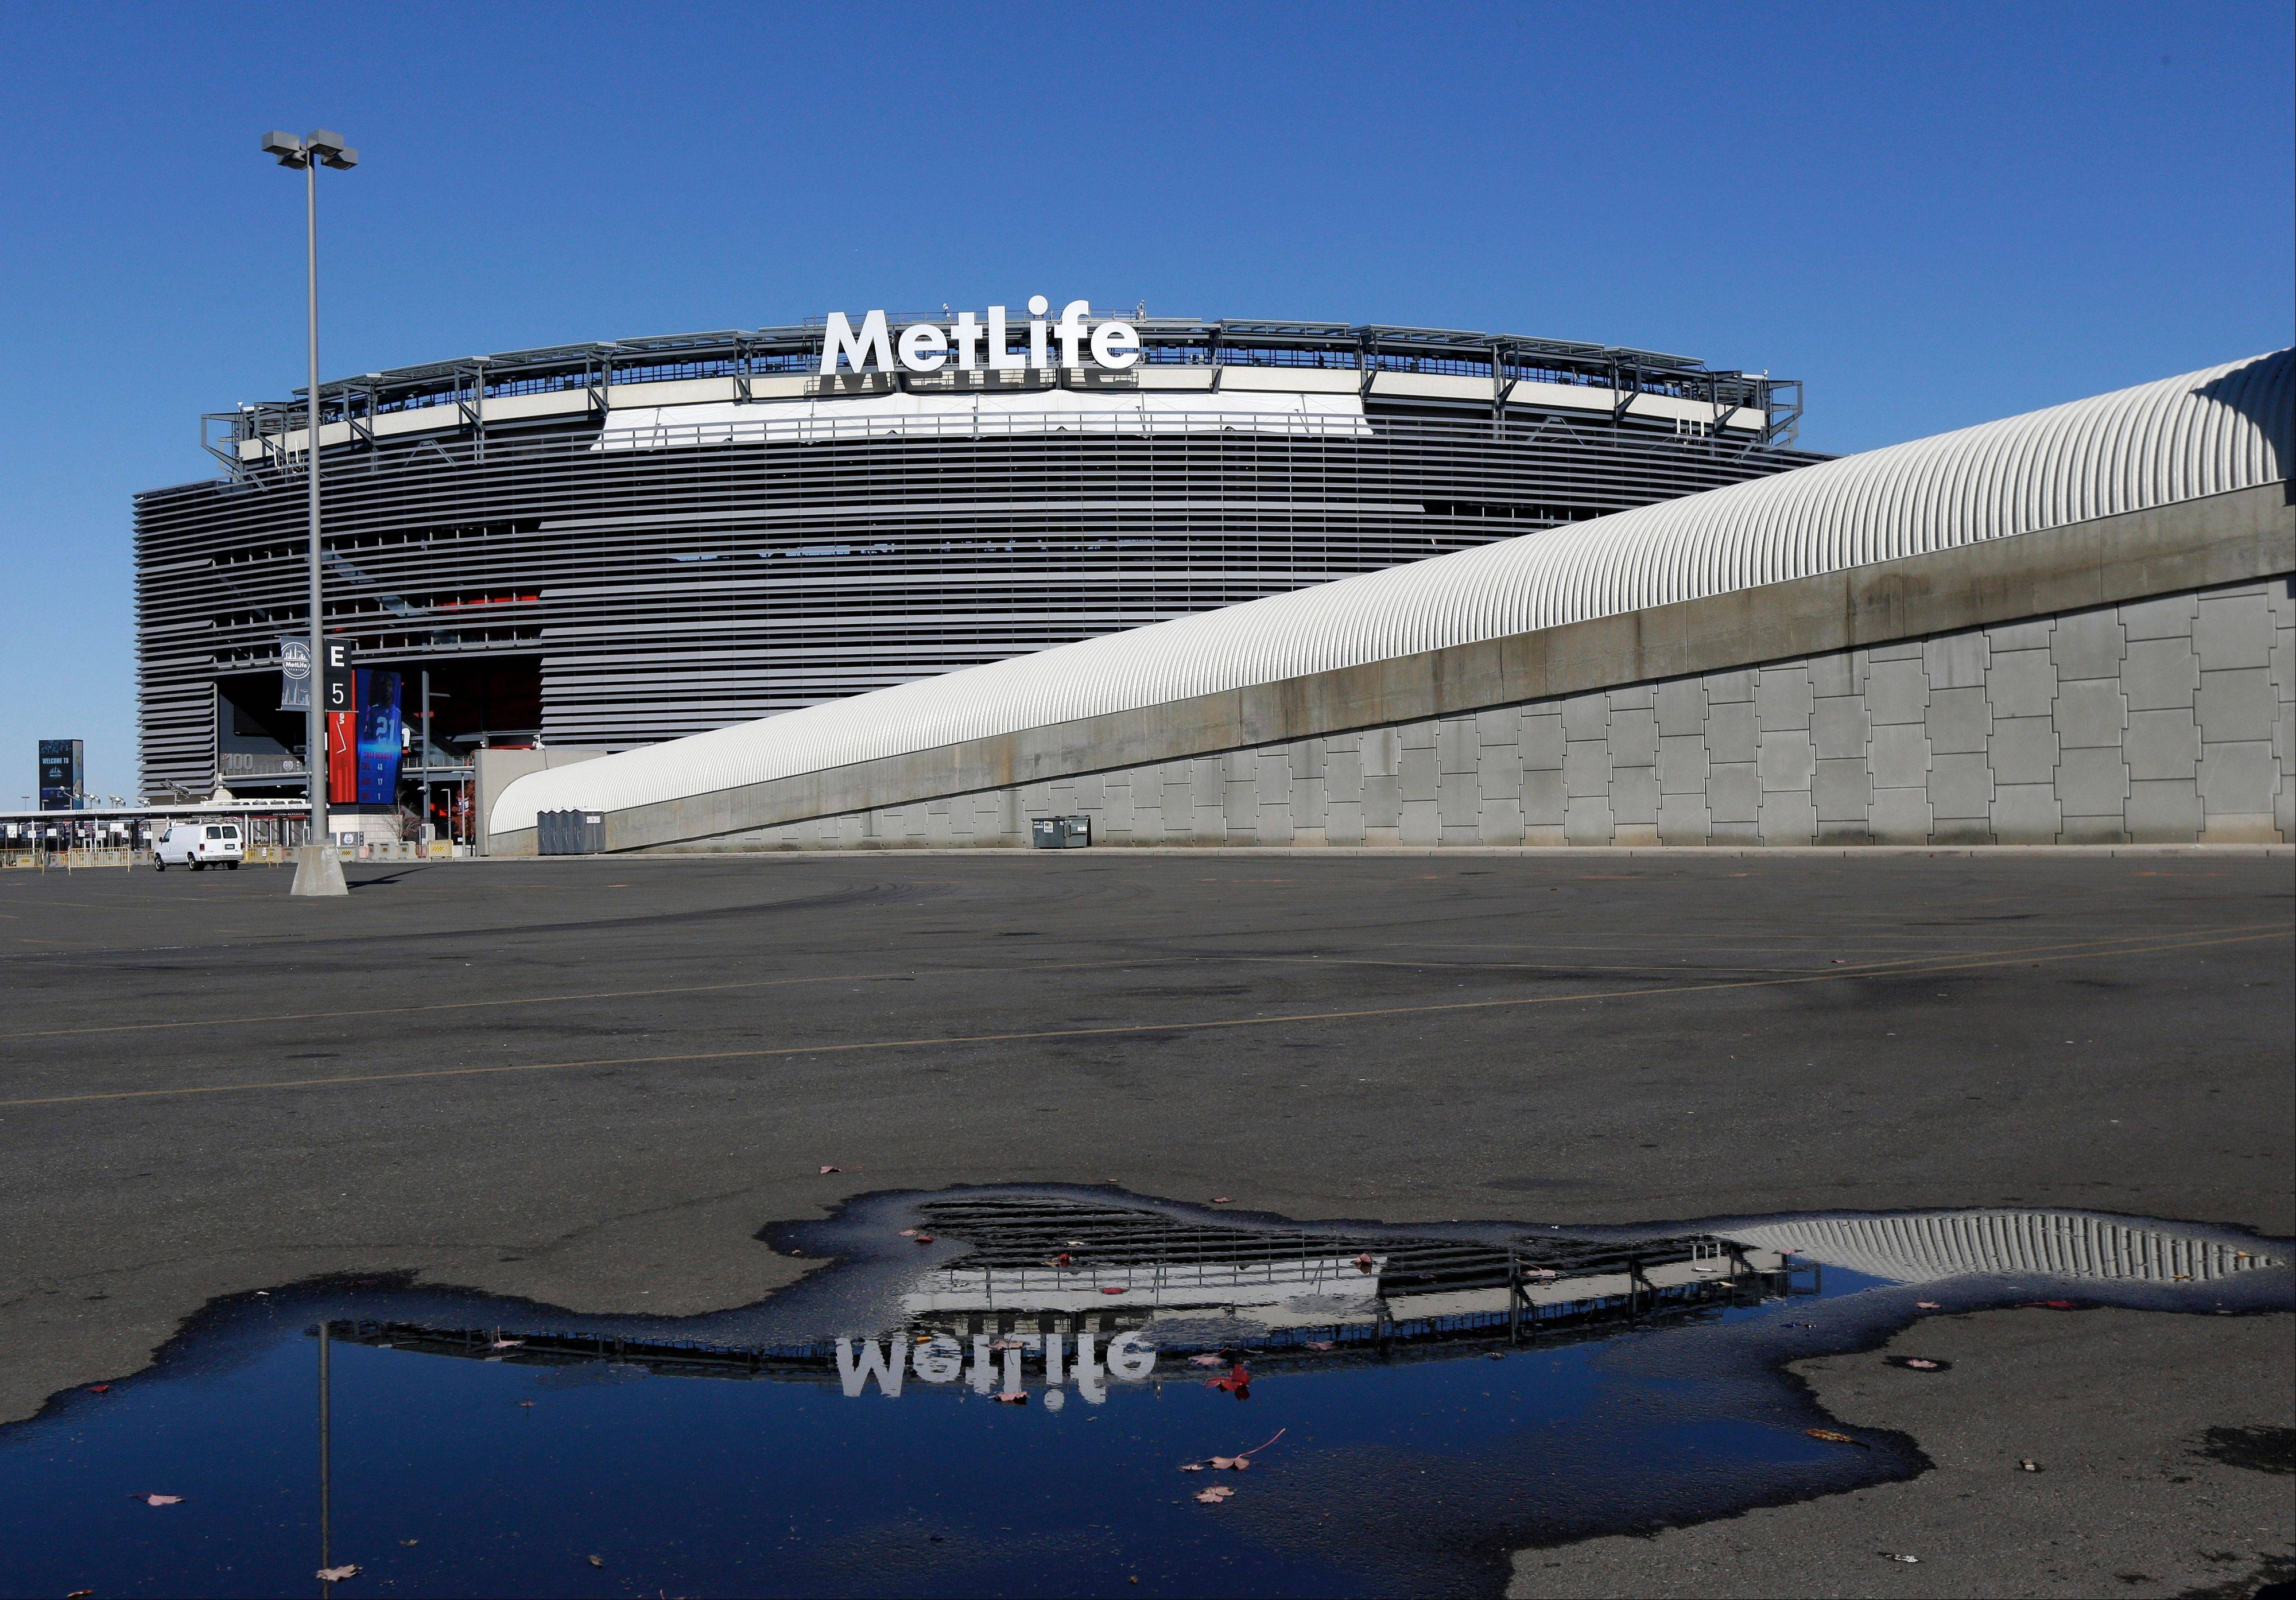 MetLife Stadium is reflected on a puddle on the stadium's parking lot in East Rutherford, N.J. Northern New Jersey towns hoping to get Super Bowl visitors to spend time and money in the Garden State, and not just across the river in Manhattan, realize they need to come up with a creative game plan to separate itself from New York.